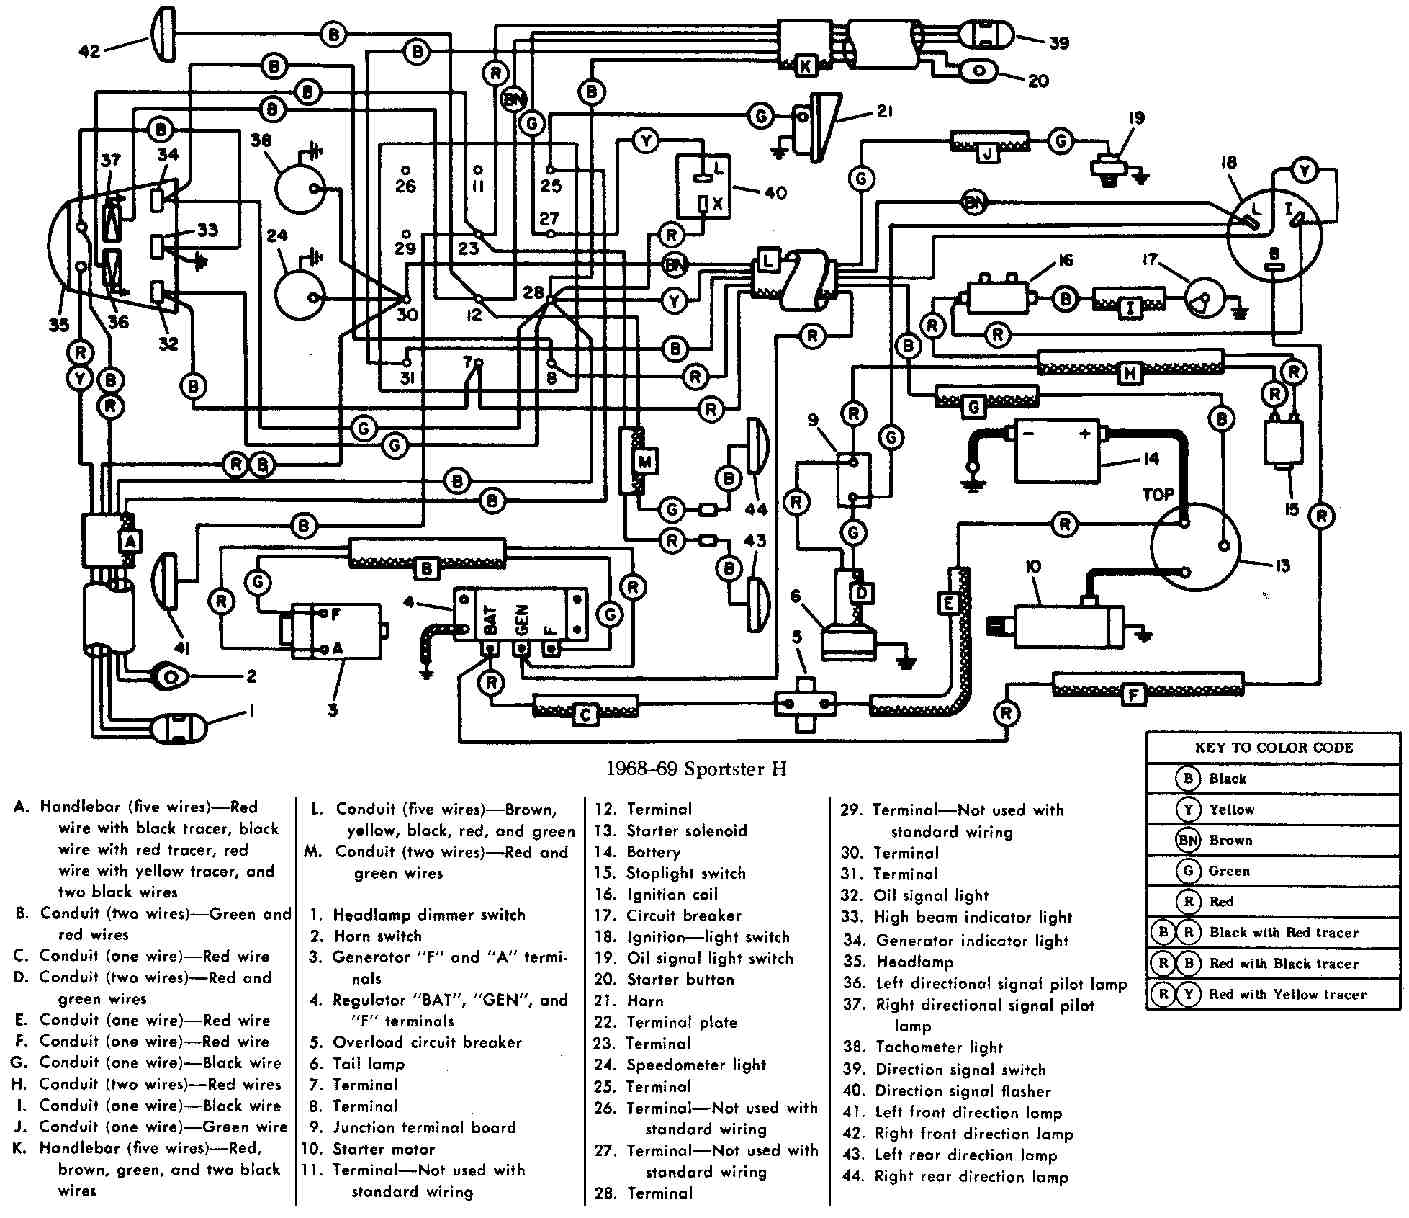 Wiring Diagram Sportster Circuit Breaker | Wiring Diagram | Article on club cart battery wiring diagram, yamaha battery wiring diagram, nissan battery wiring diagram, international battery wiring diagram, kawasaki battery wiring diagram, diesel battery wiring diagram, volkswagen battery wiring diagram, john deere battery wiring diagram, holiday rambler battery wiring diagram, motorcycle battery wiring diagram, club car battery wiring diagram,